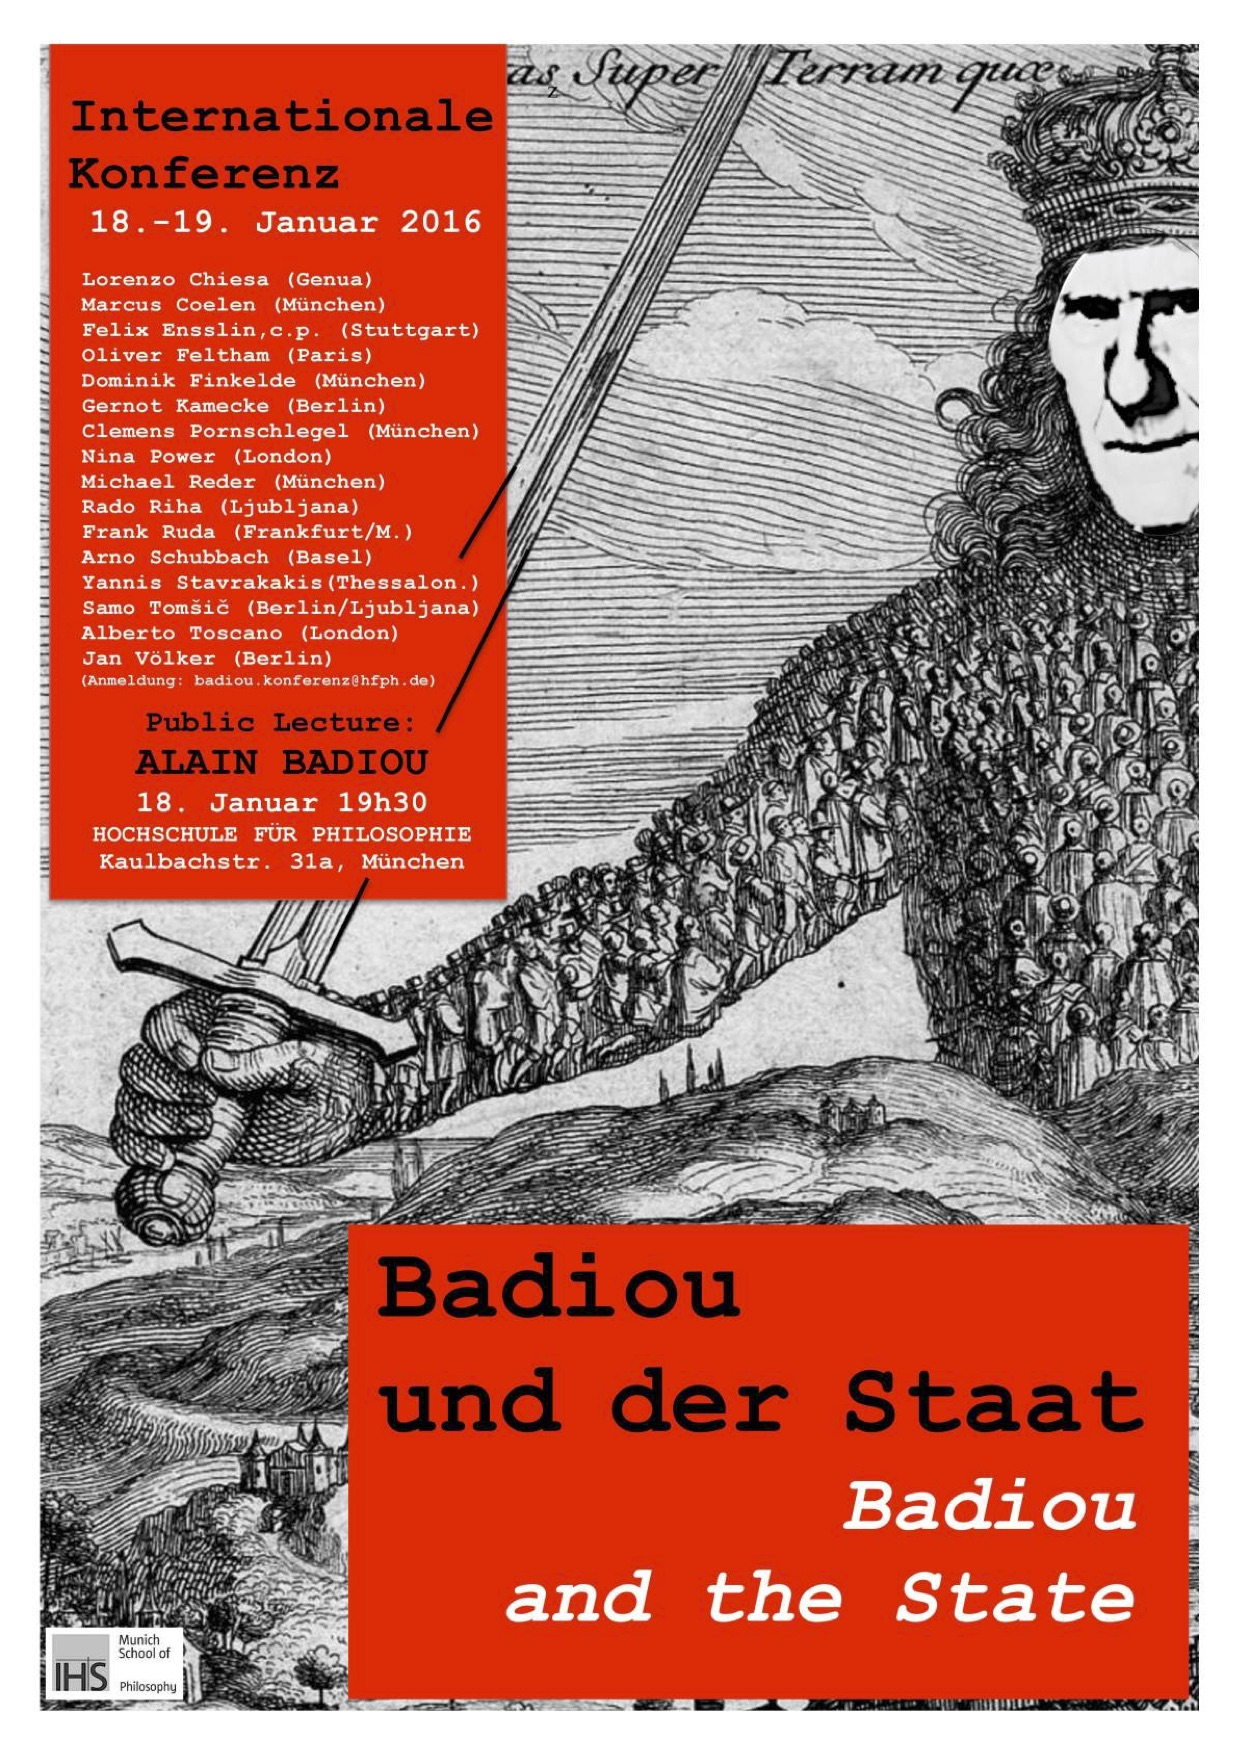 Badiou and the State - Poster k.jpg